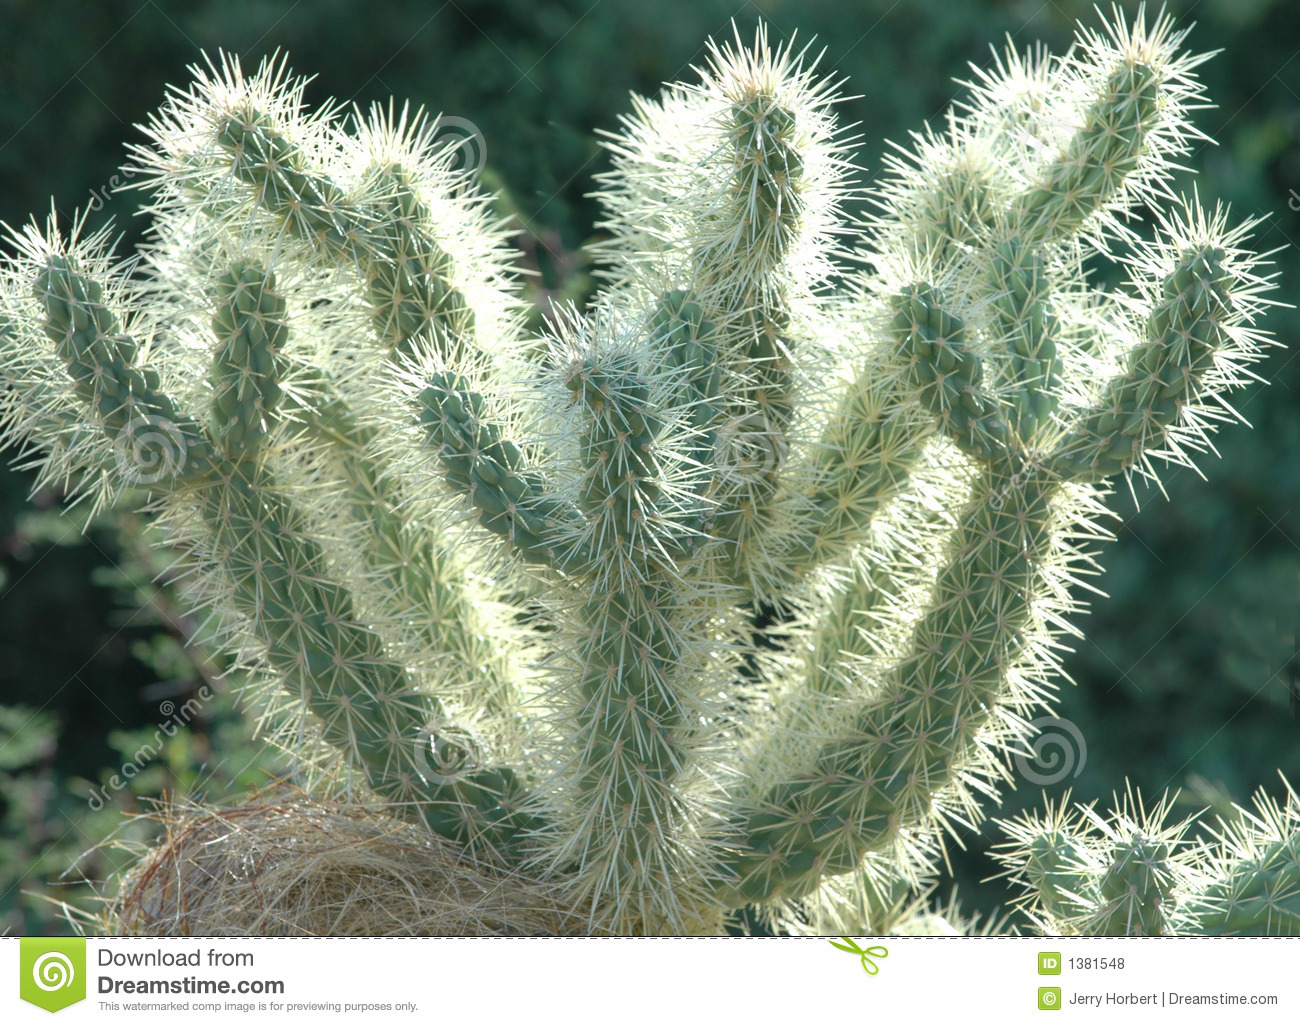 Desert Cactus Royalty Free Stock Photos - Image: 1381548